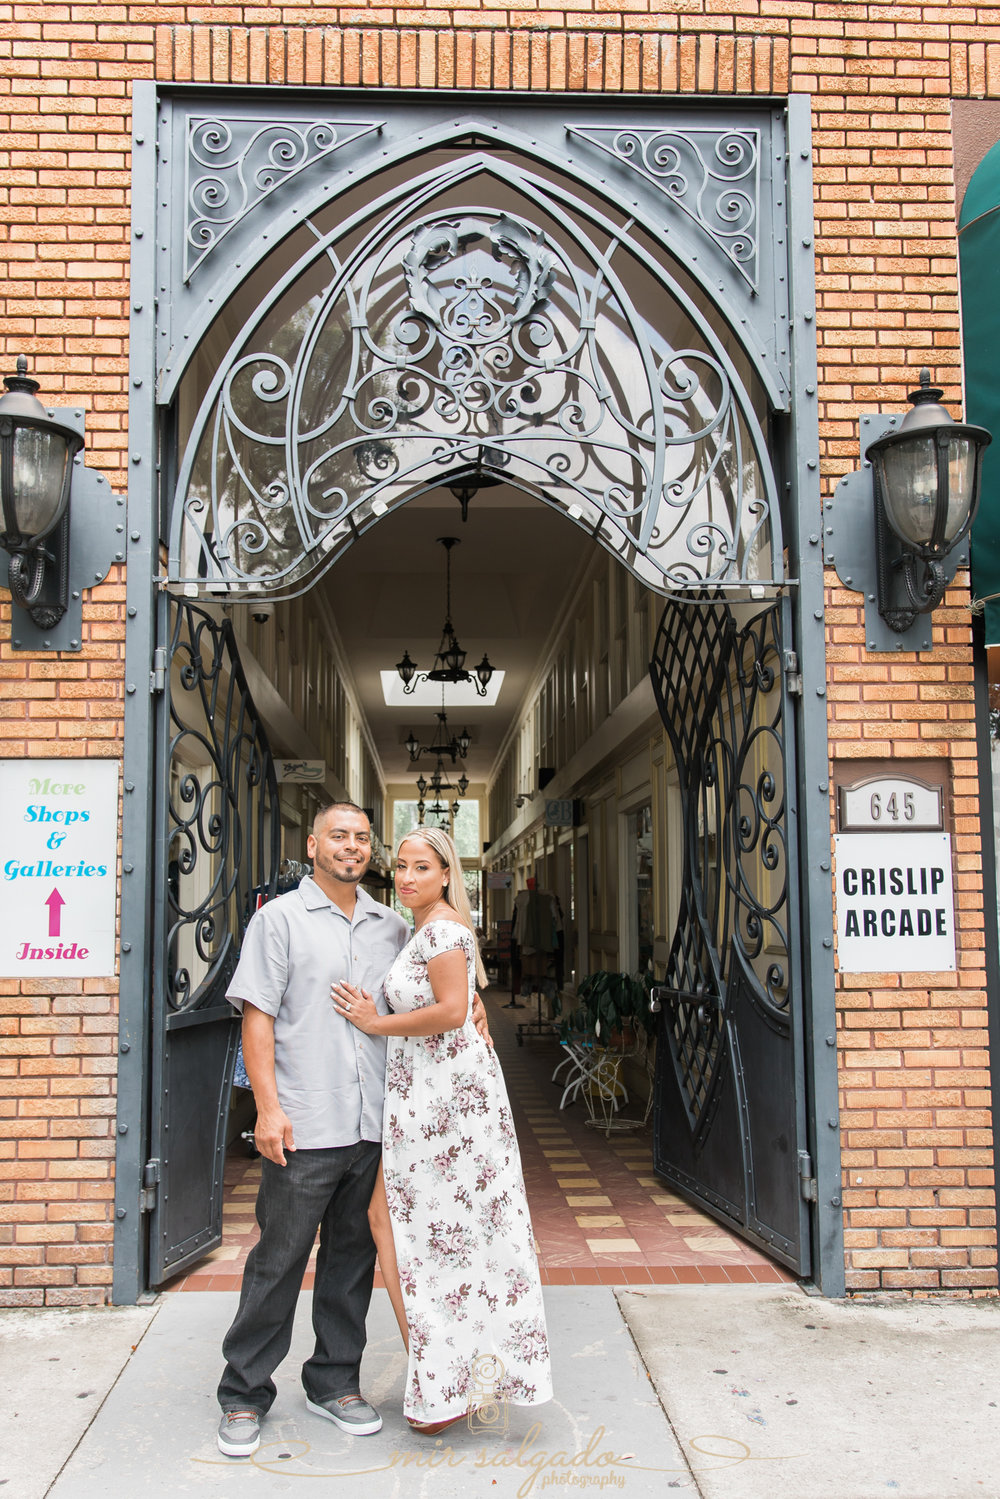 miriam-photography-tampa-st-pete-engagement-session-sunny-floral-dress-shops-galleries-crislip-arcade